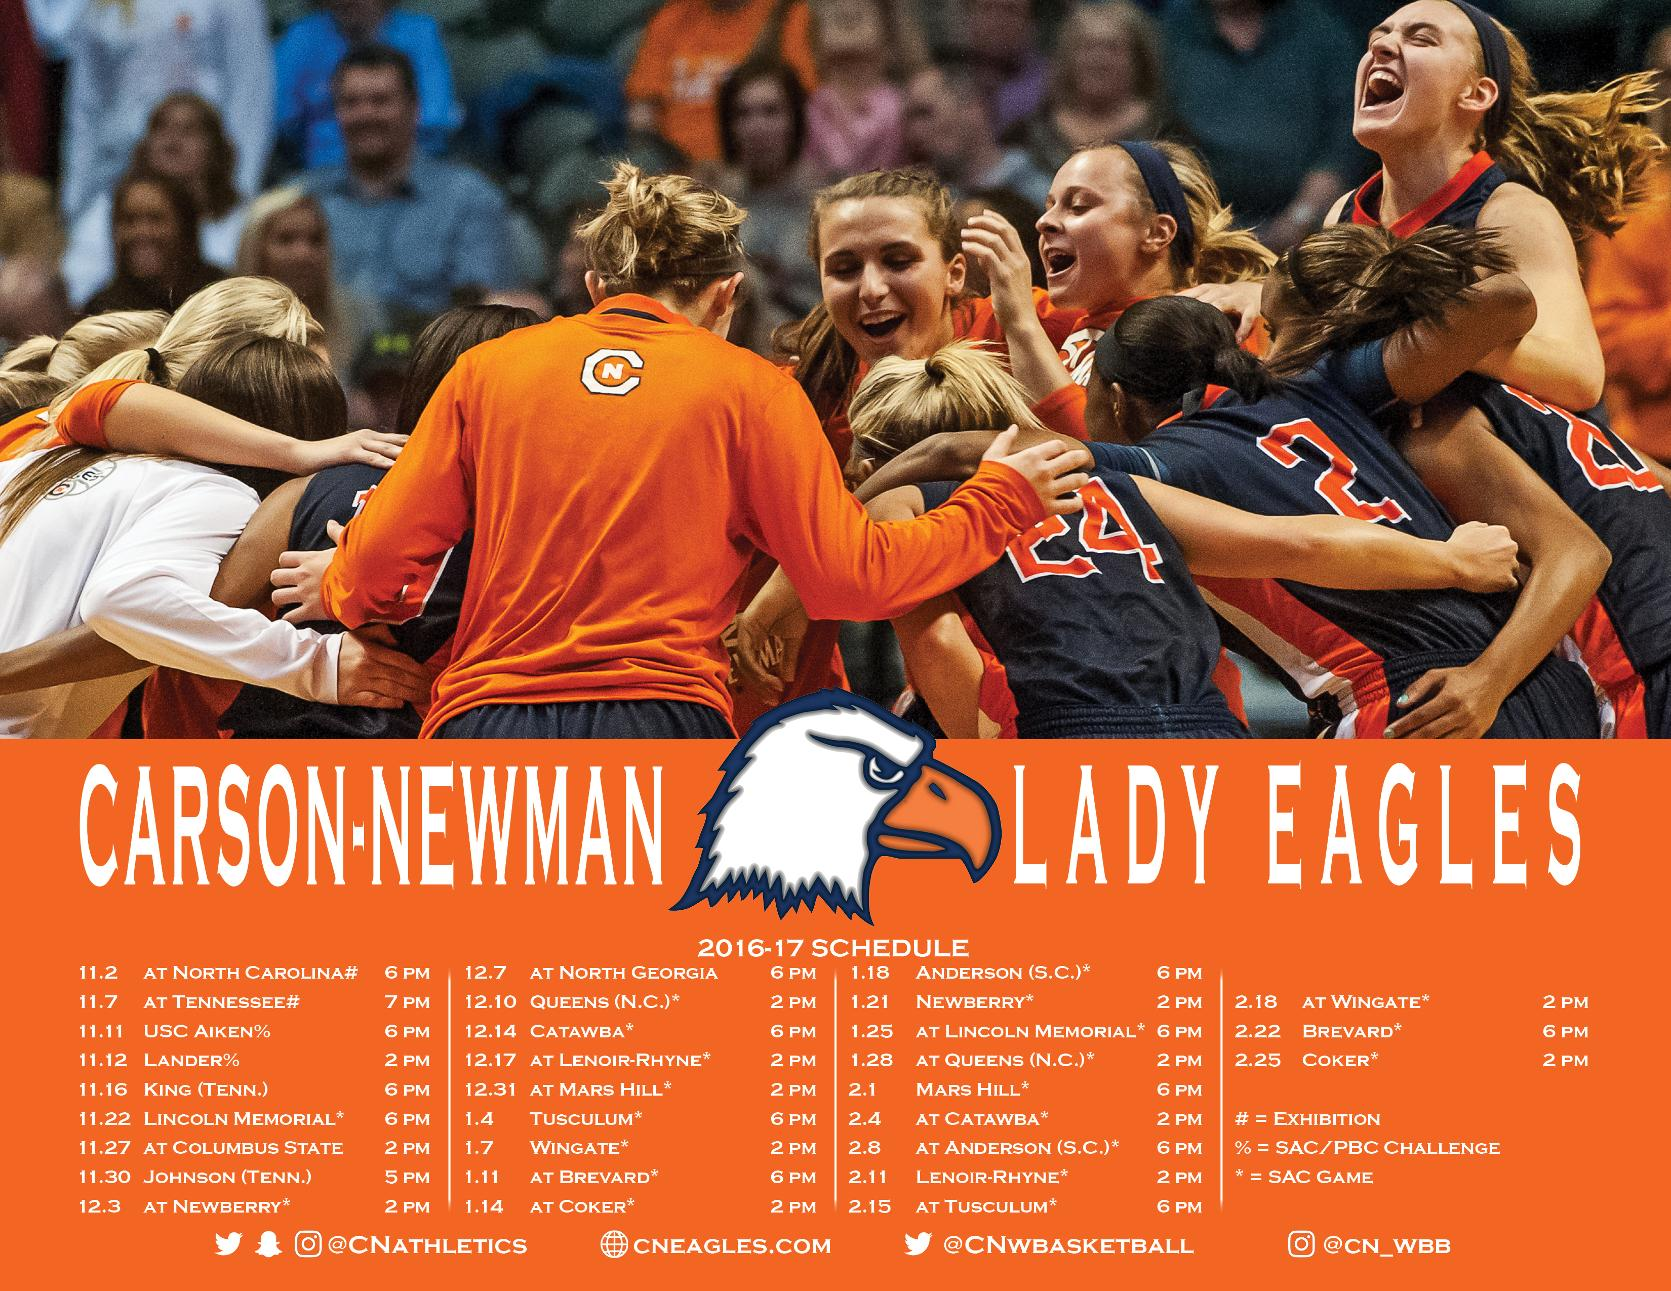 Lady Eagles debut balanced 2016-17 schedule